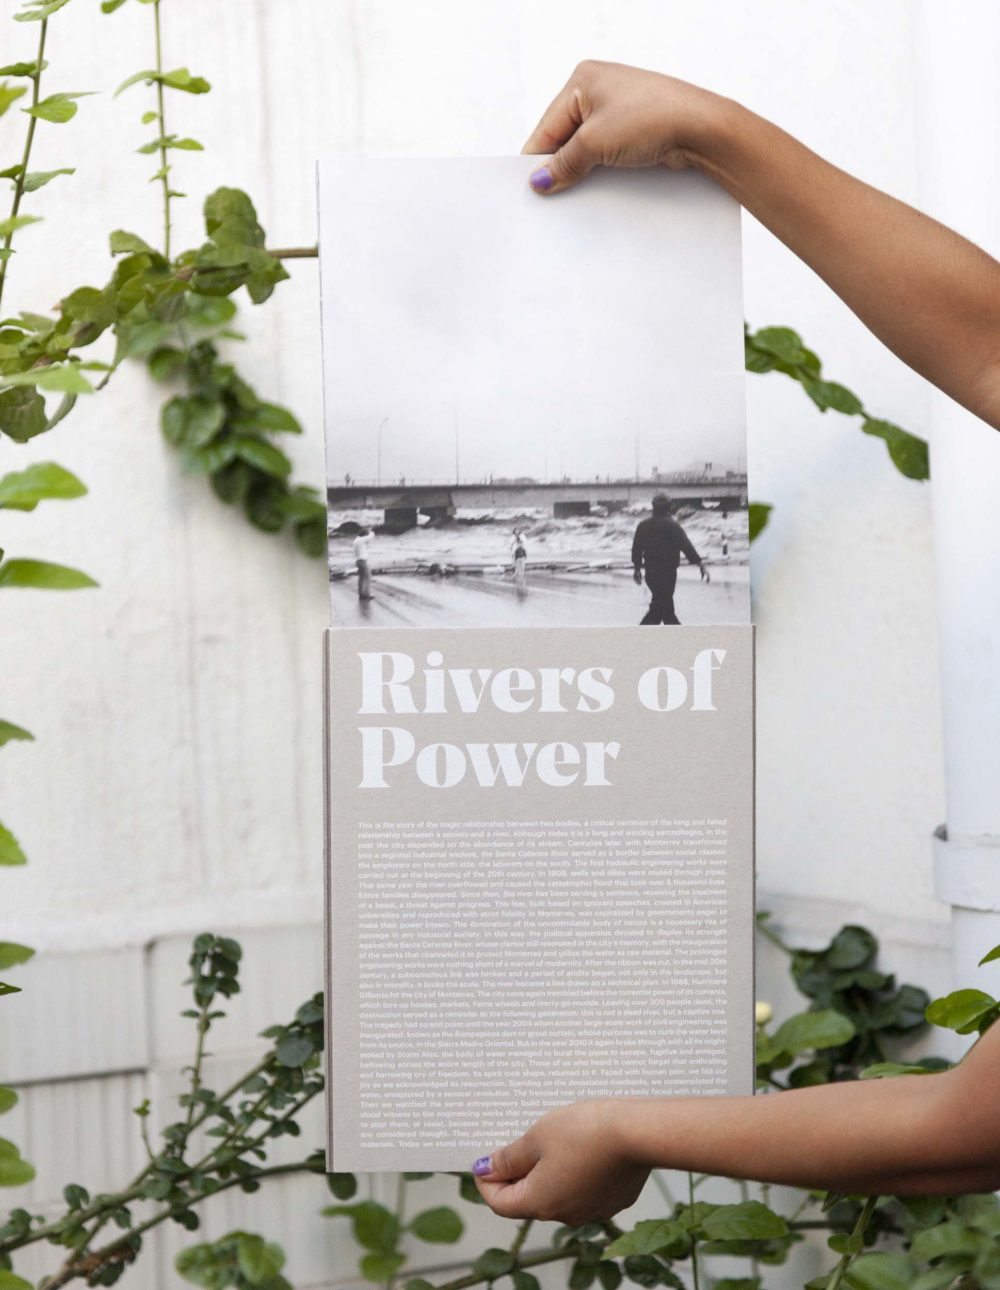 Rivers of Power Book by Alejandro Cartagena, Published 2016 by Studio Cartagena, NEWWER